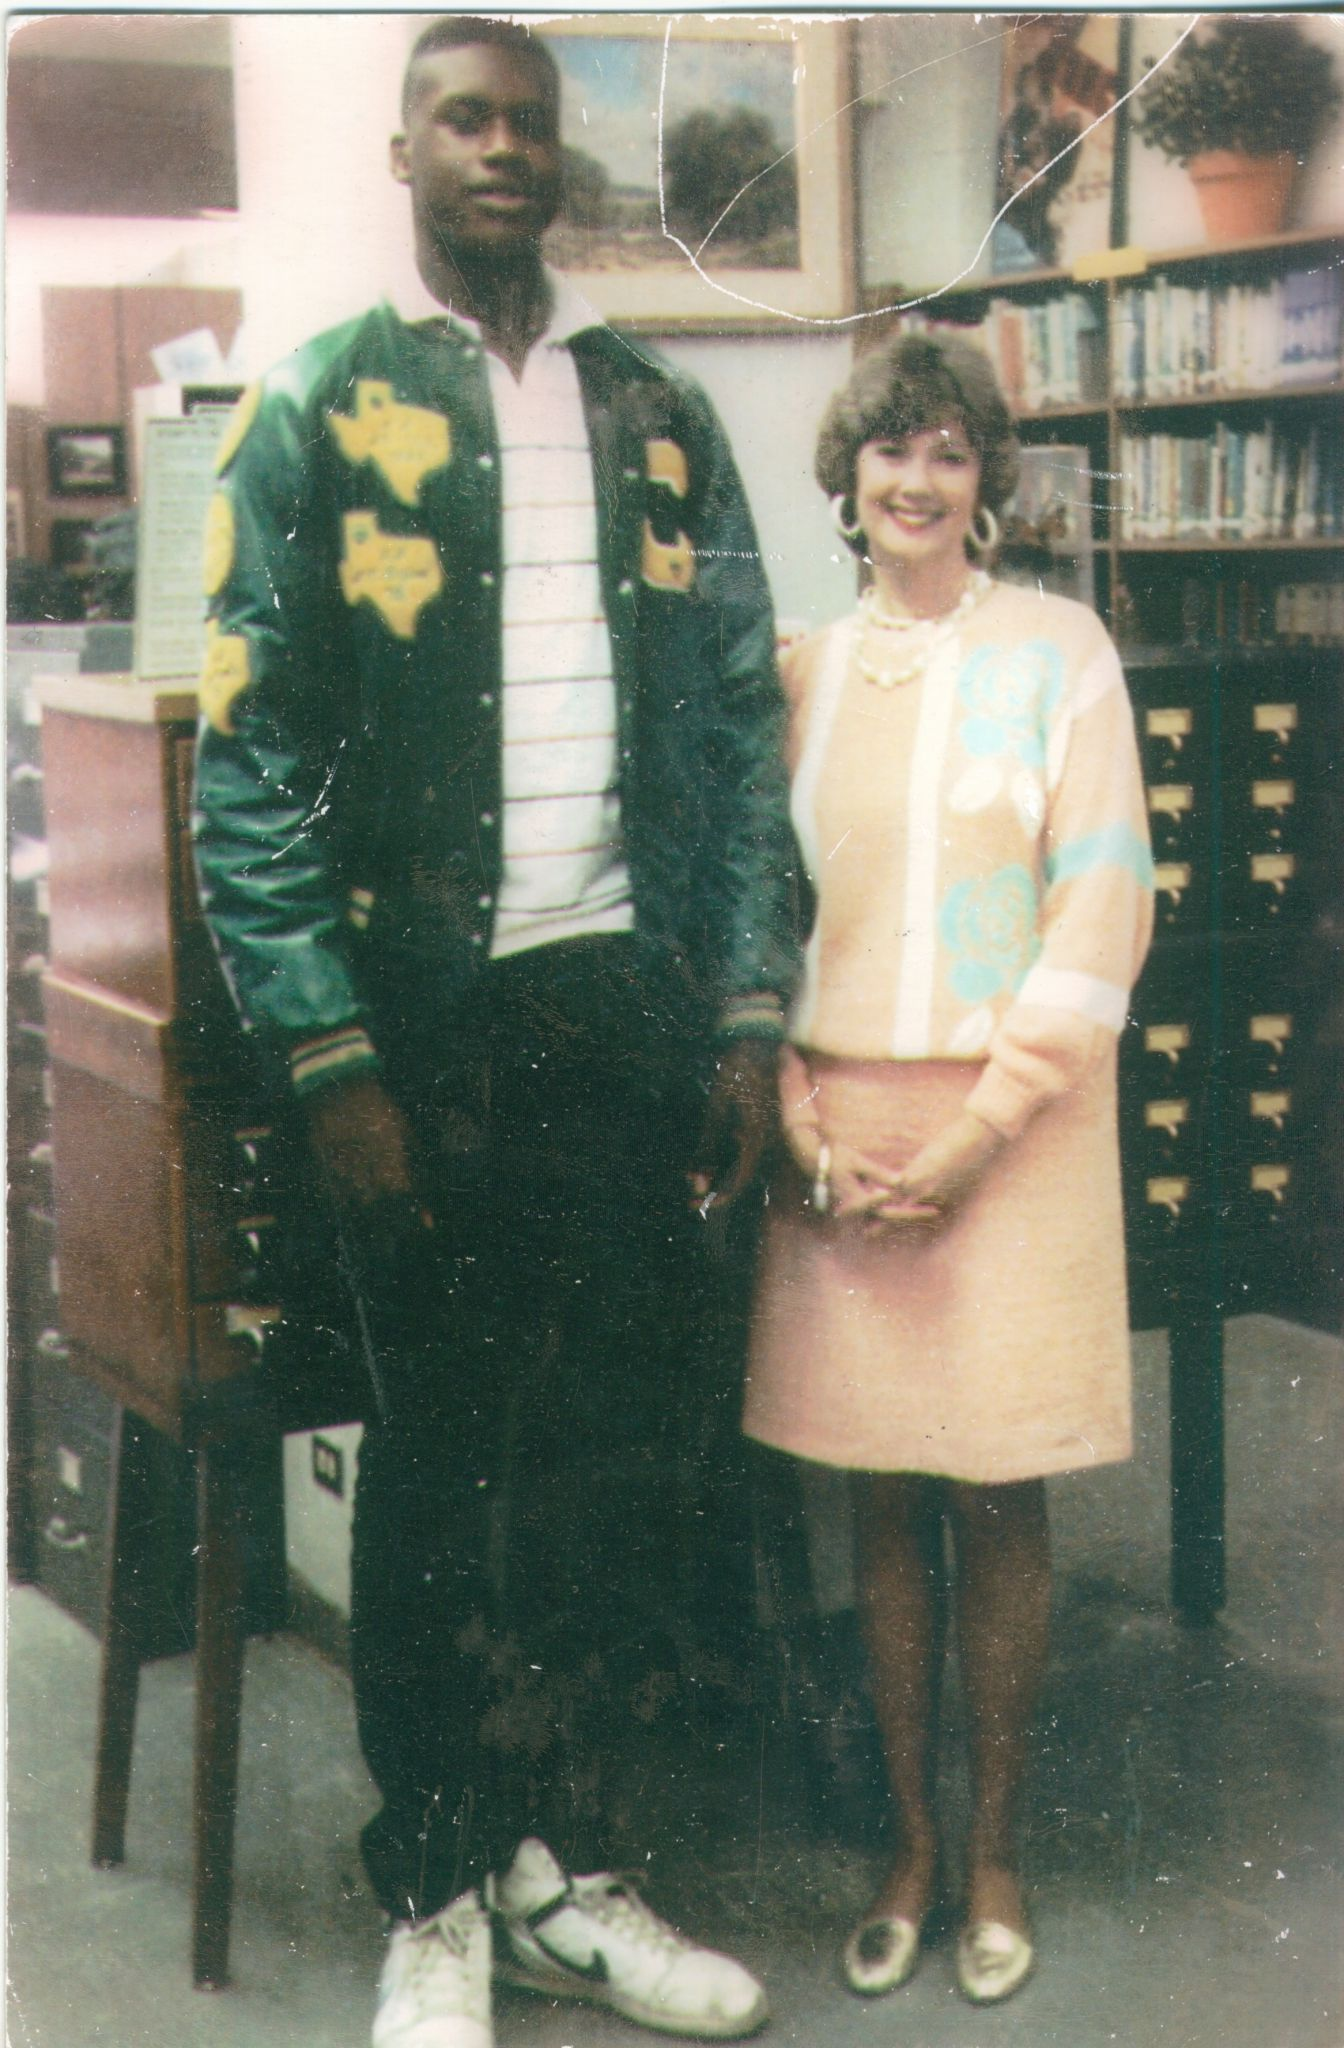 Shaquille O'Neal graduated from Cole High School 20 years ago